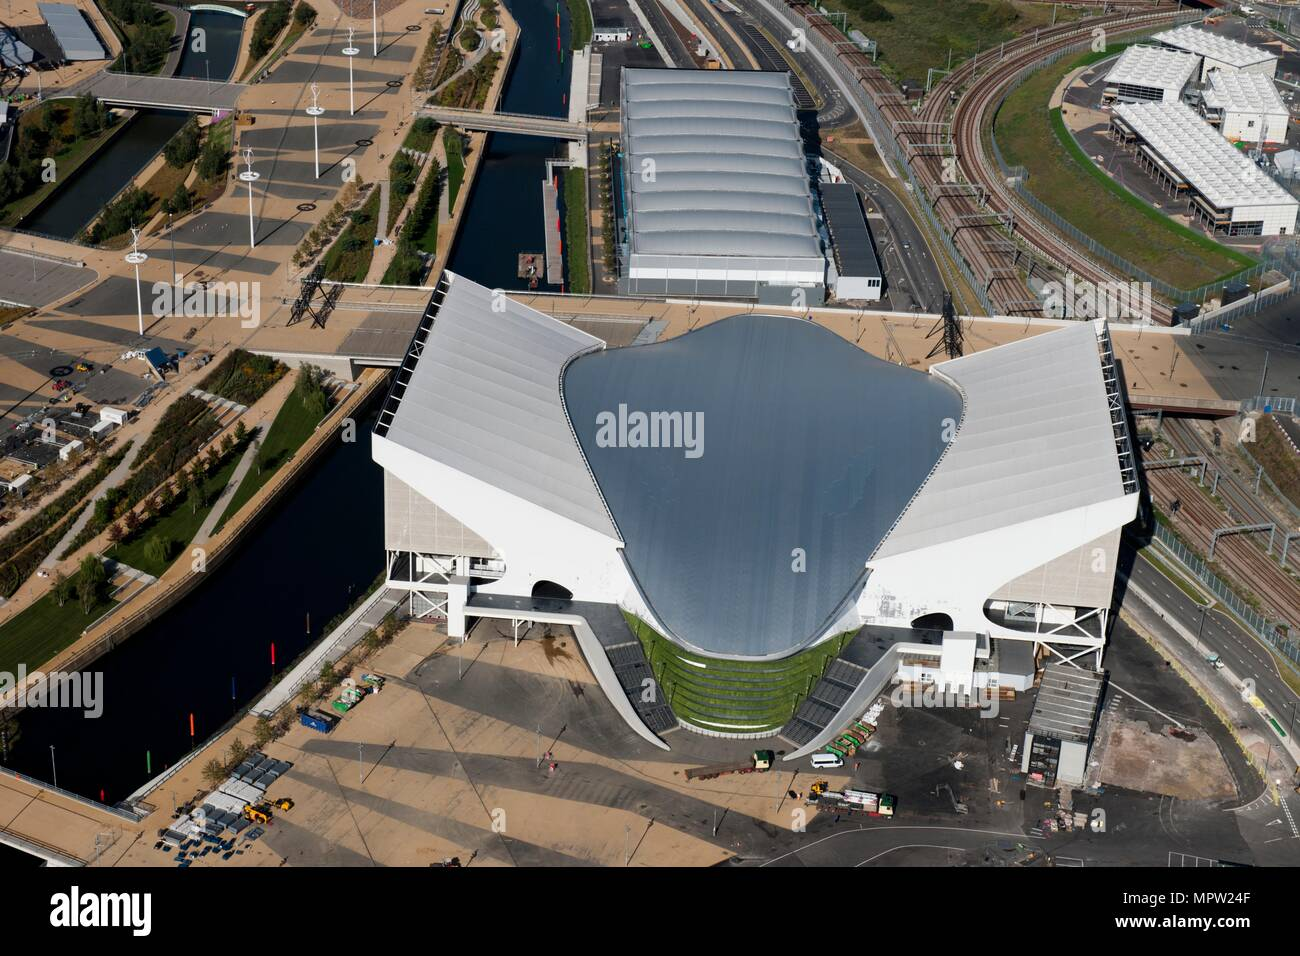 Olympic swimming pool aerial stock photos olympic - Queen elizabeth olympic park swimming pool ...